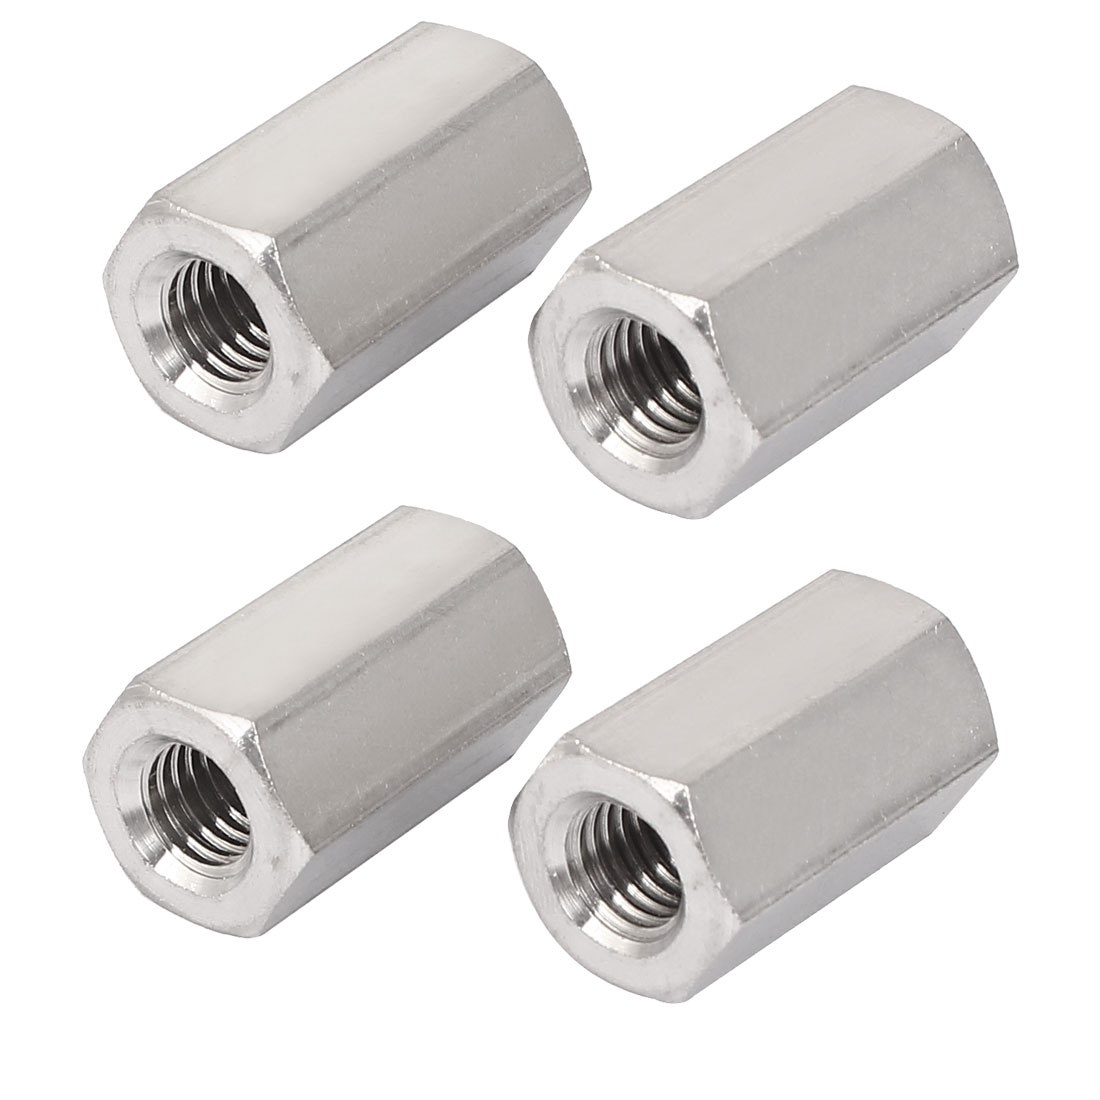 M10x30mm Stainless Steel Threaded Bar Rod Studding Hex Connector Deep Nut 4pcs